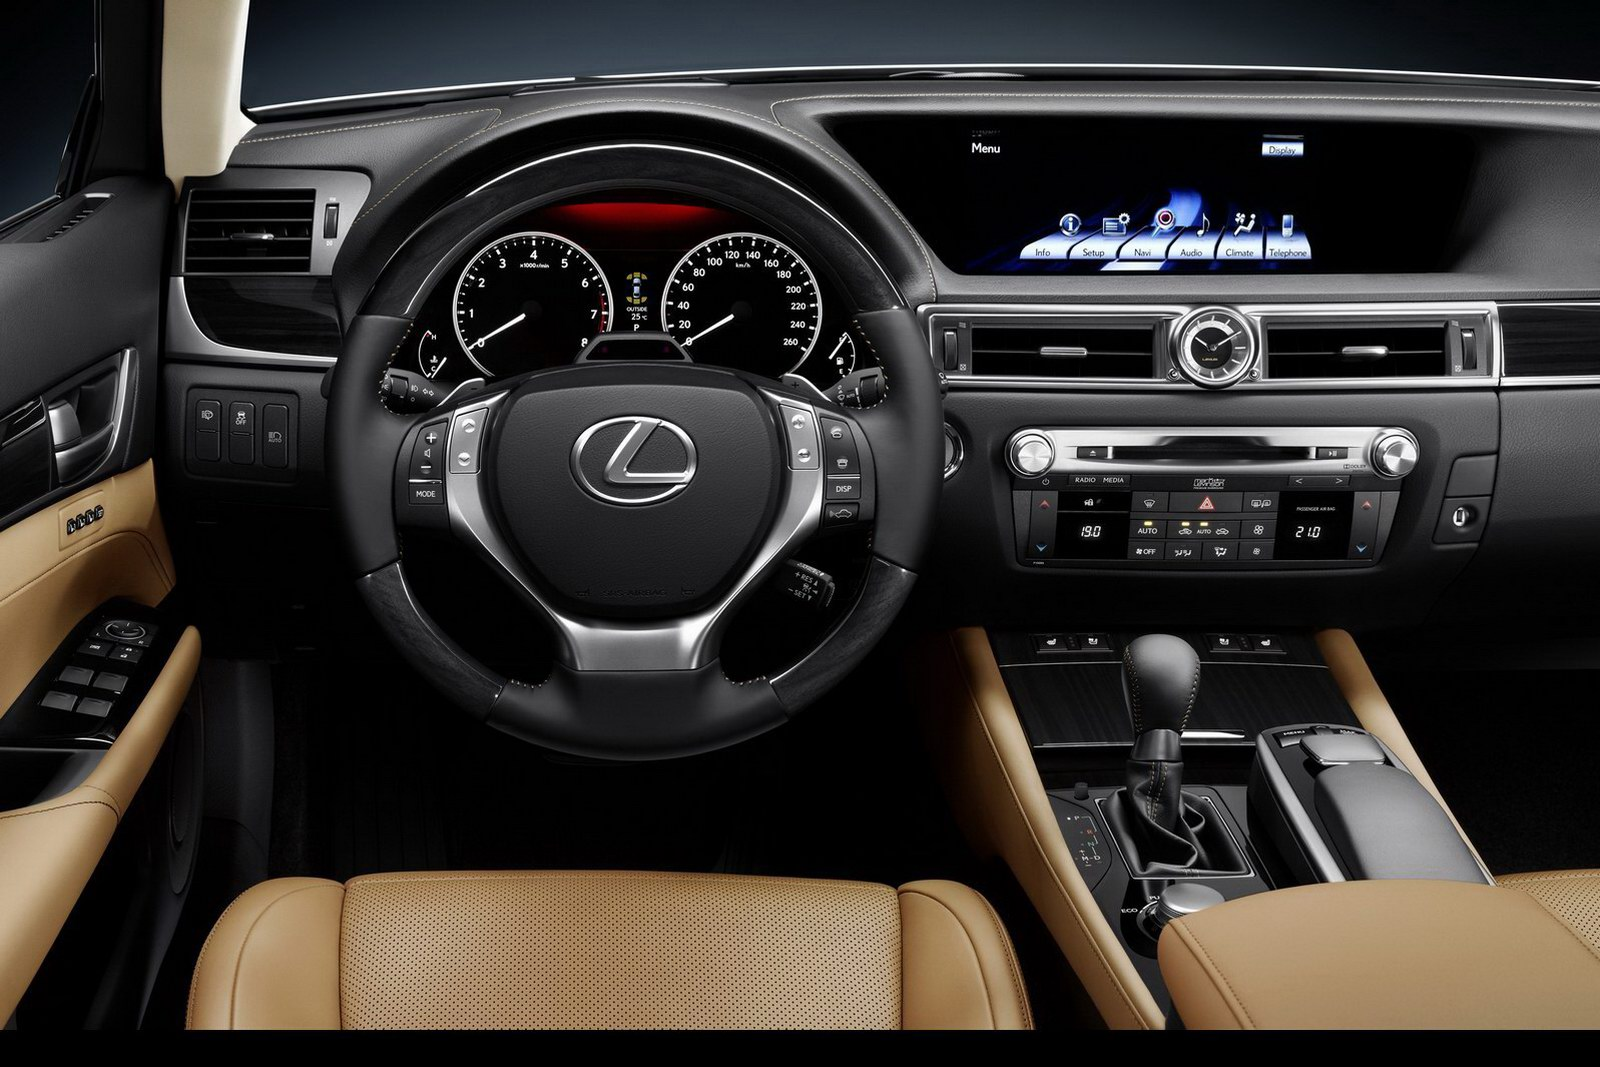 Have you ever seen this upgraded Lexus 2013 GS model? #3